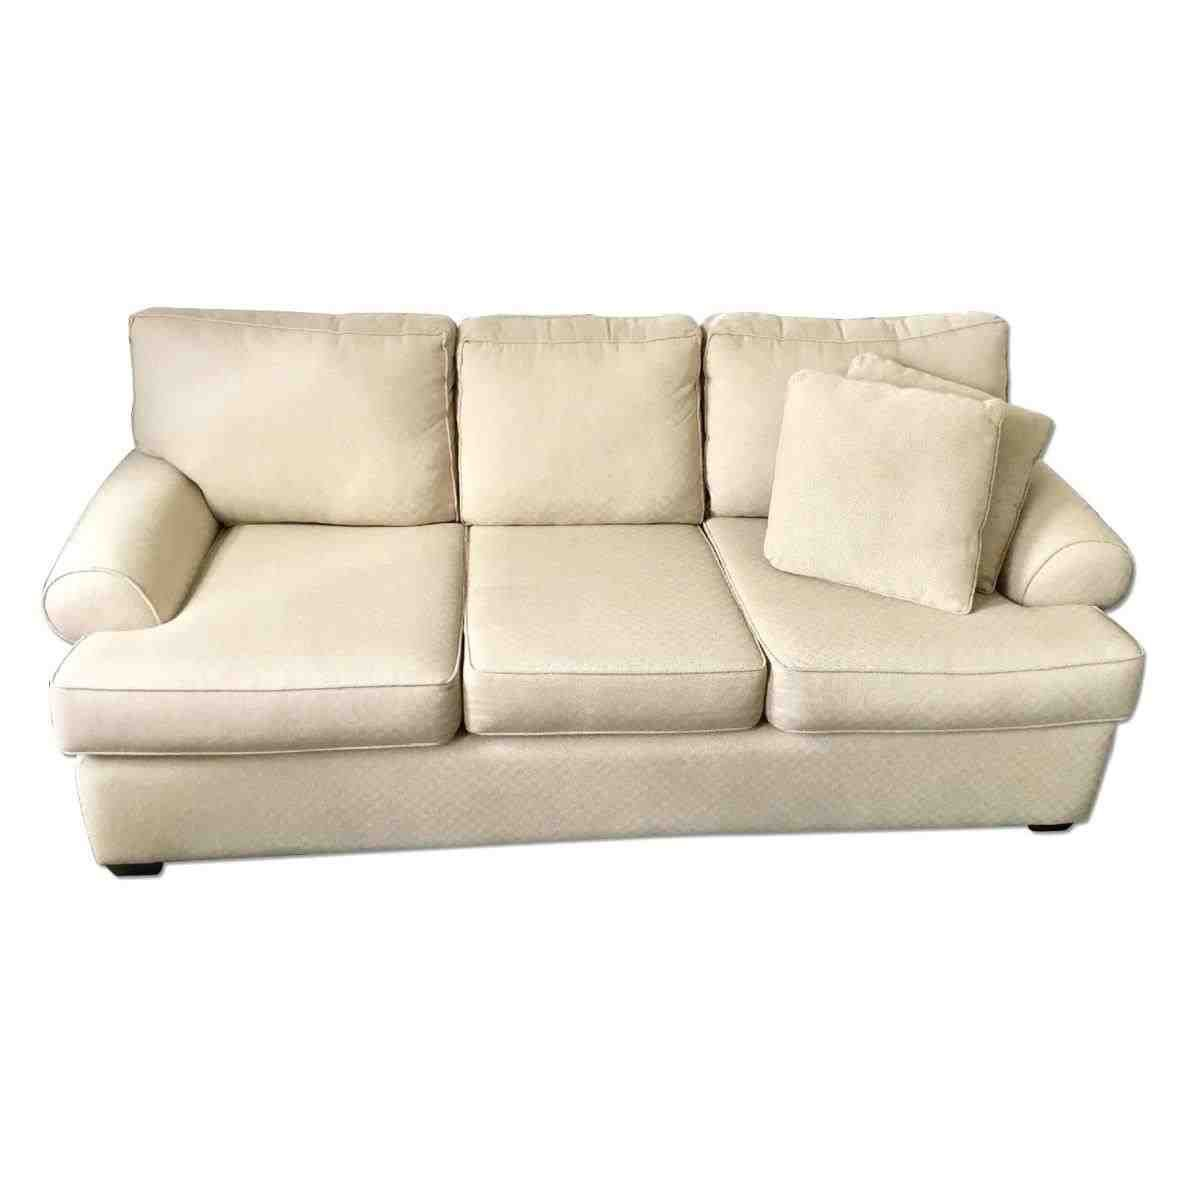 Amazon Sofa Sale Cheap Sectionals For Sale Curved Couches Leather Oversized